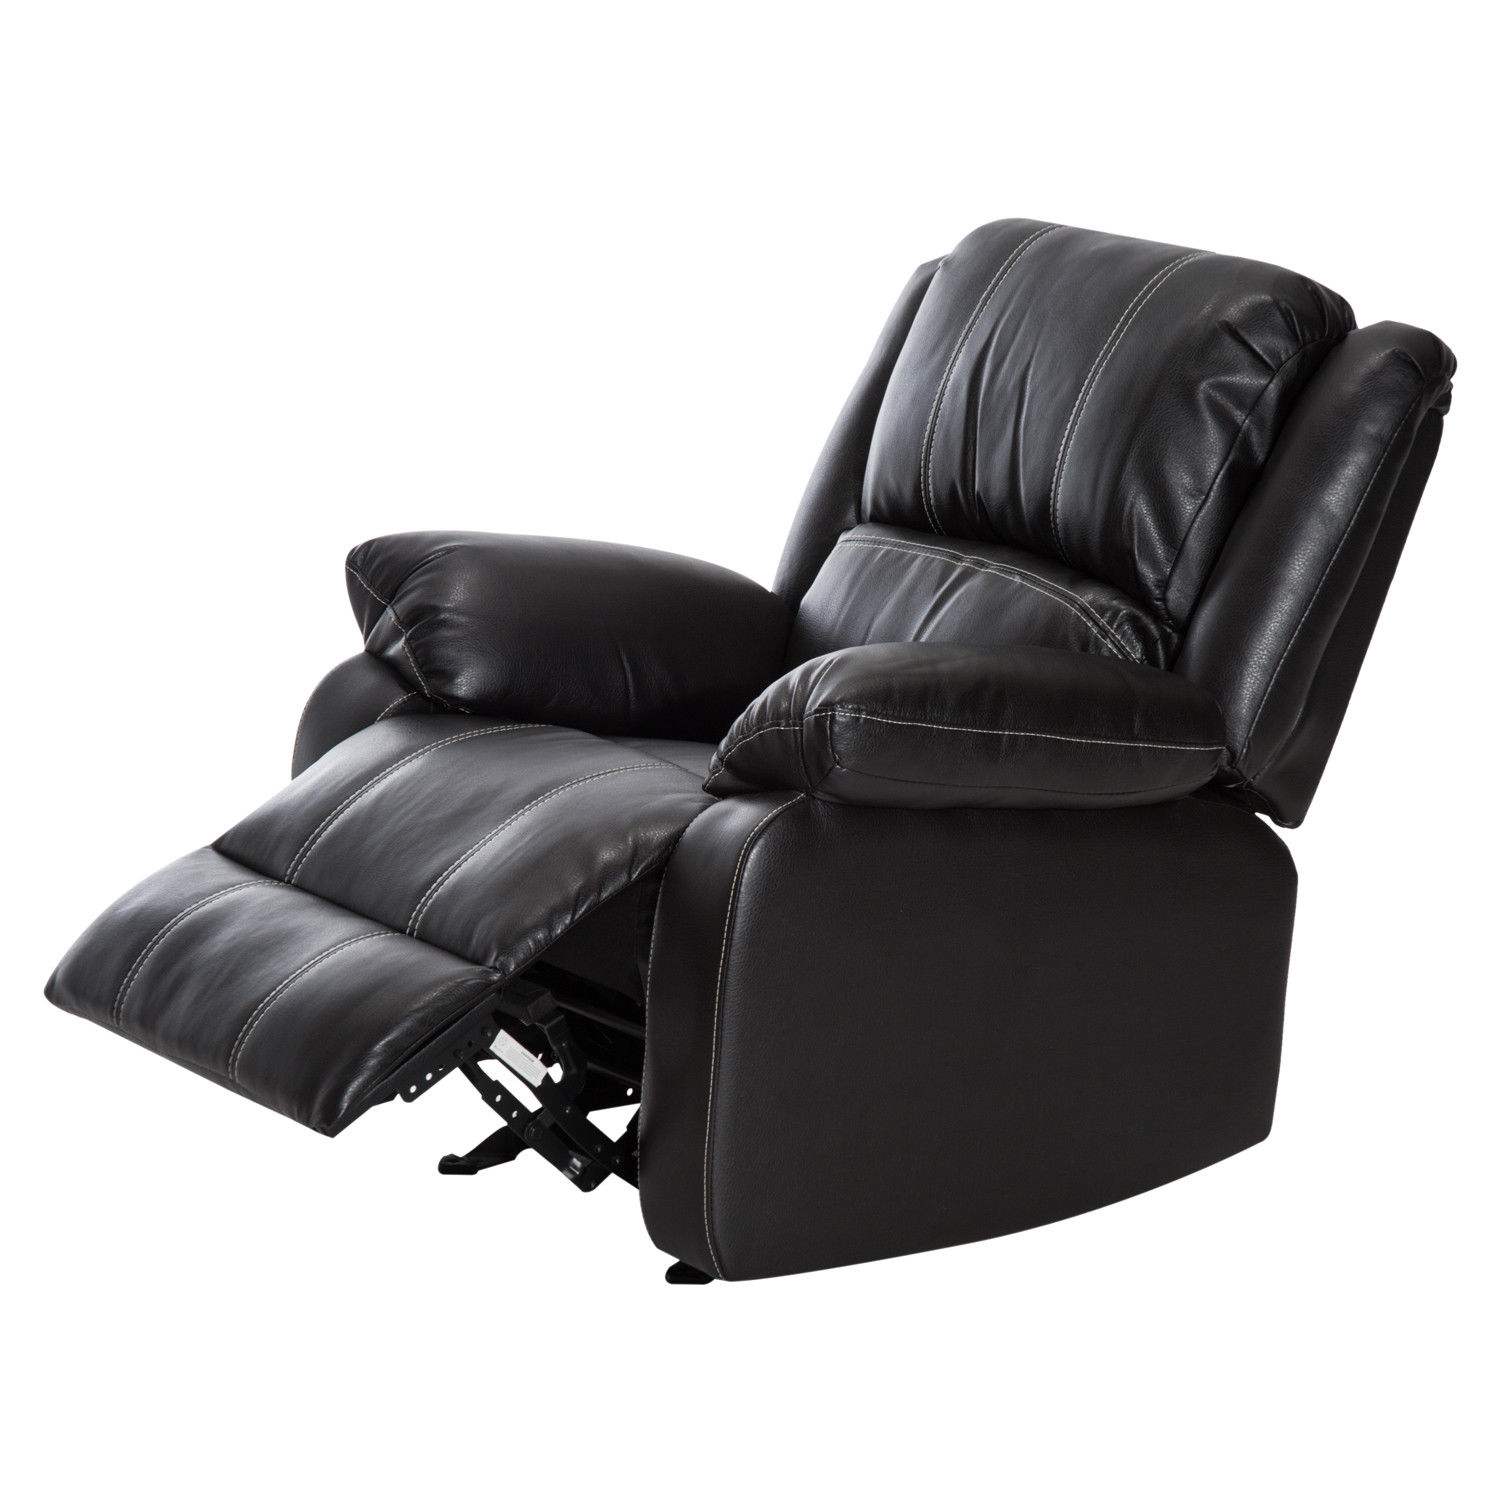 HomCom PU Leather Rocker Recliner Living Room Arm Chair - Black